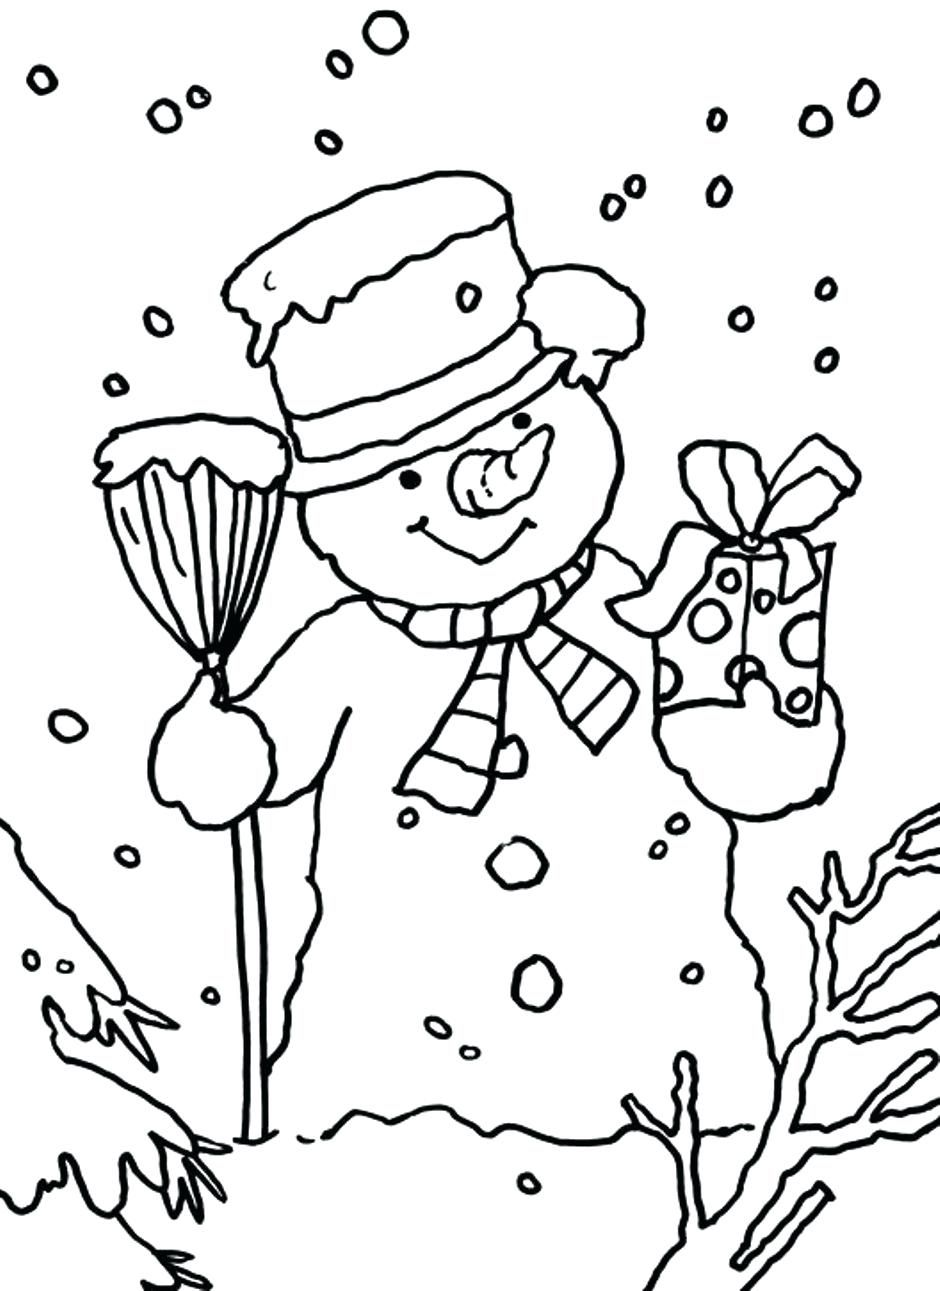 Free Printable Calendar Dltk  Snowman coloring pages, Christmas